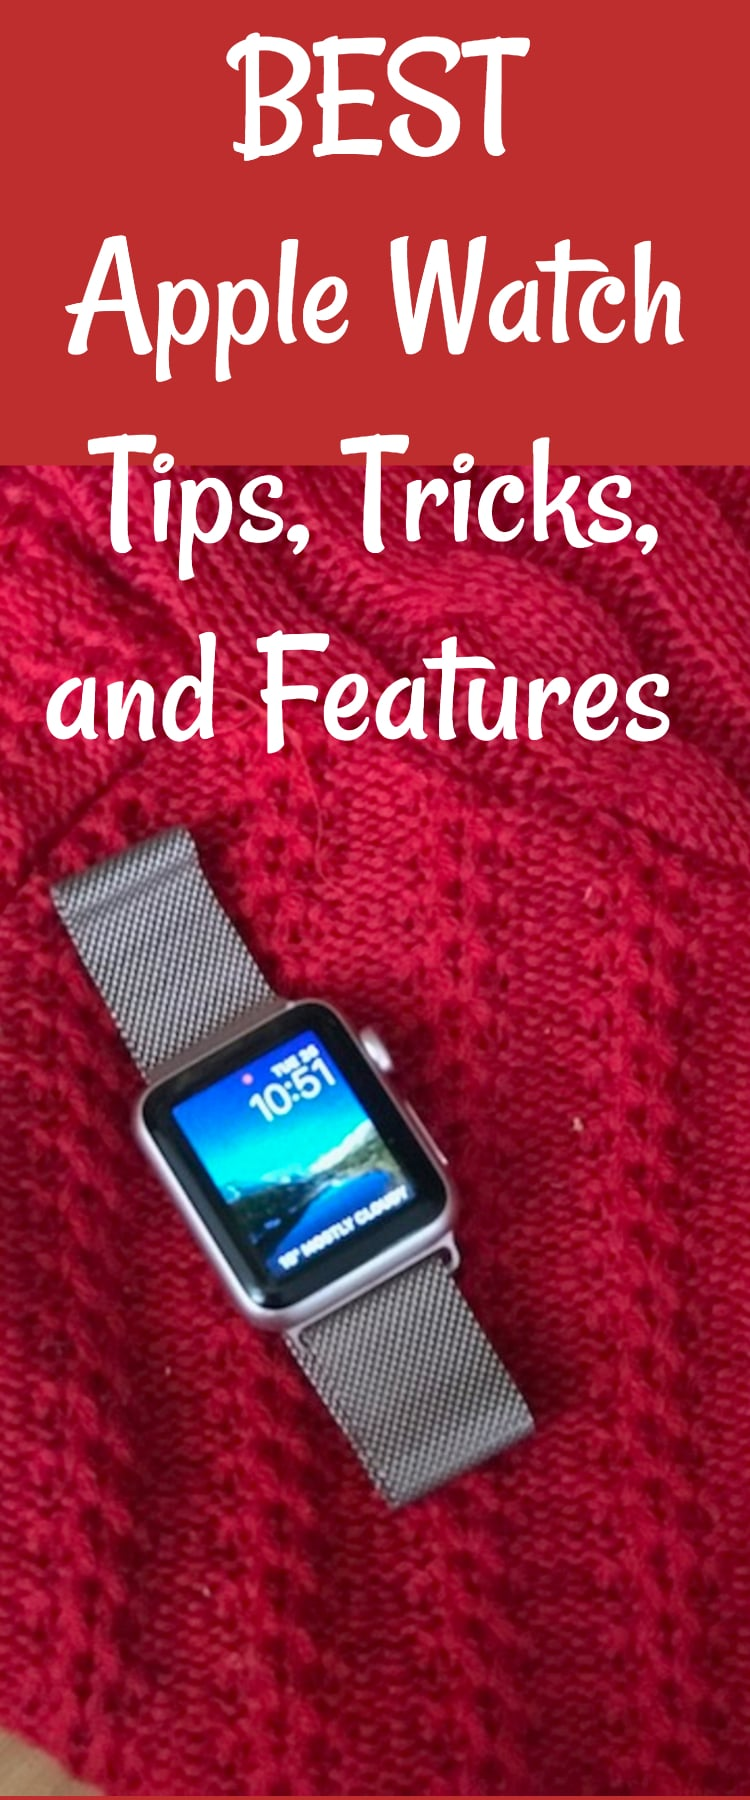 Apple Watch Tips and Tricks Apple Watch Tips / Apple Watch Features / Apple Watch iOS / Fitness Tracker / Fitness